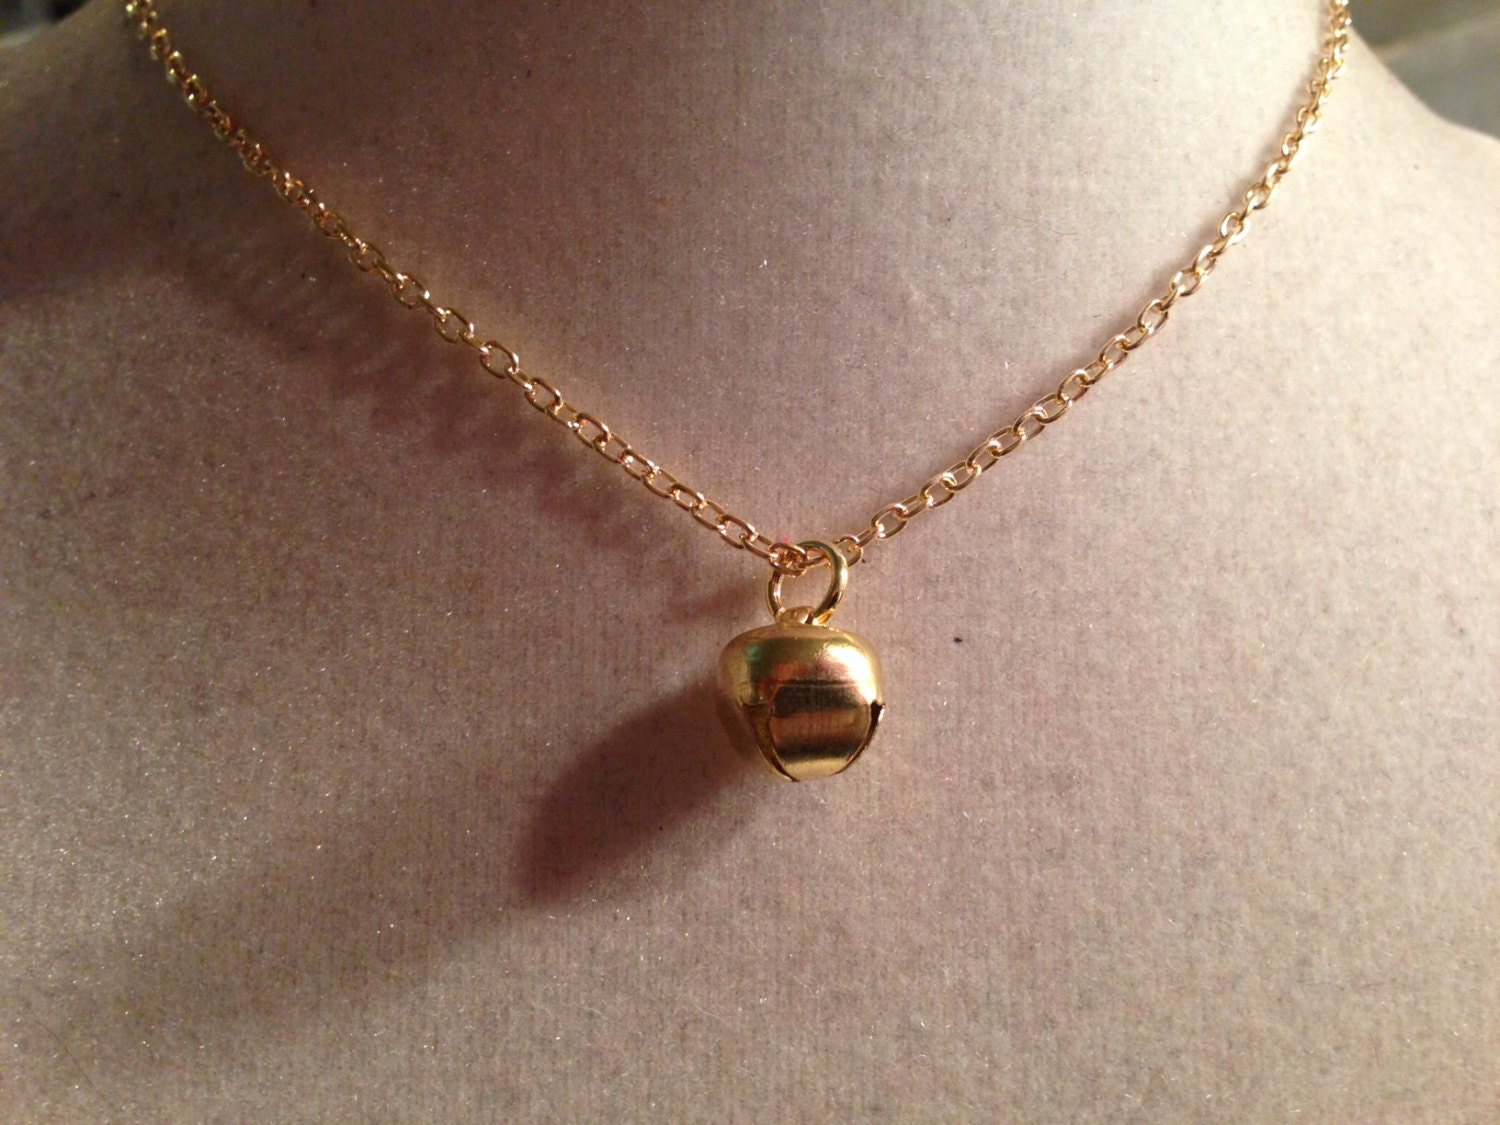 bell necklace jingle bell necklace gold jewelry pendant